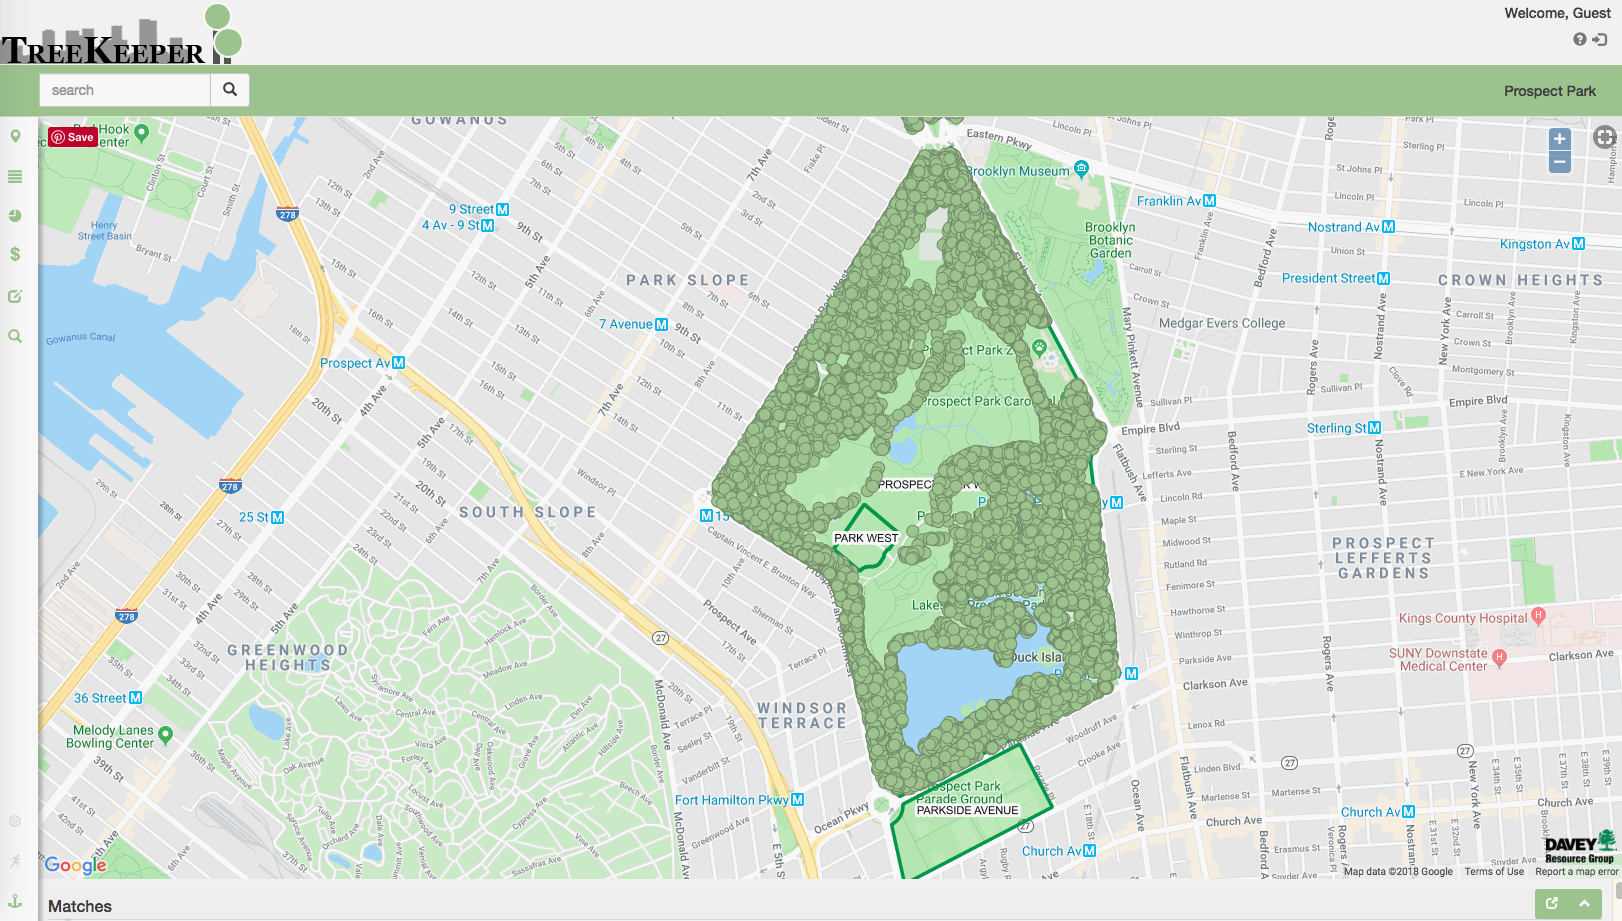 Interactive map lets you explore Prospect Park's 200 tree ... on minnesota dnr lake maps, games maps, 2d maps, united kingdom maps, topographic maps, classic maps, schiphol airport parking maps, asia maps, all maps, motion maps, presentation maps, world of warships maps, virtual maps, fun maps, educational maps, google maps, dot right of way maps, vermont town boundary maps,